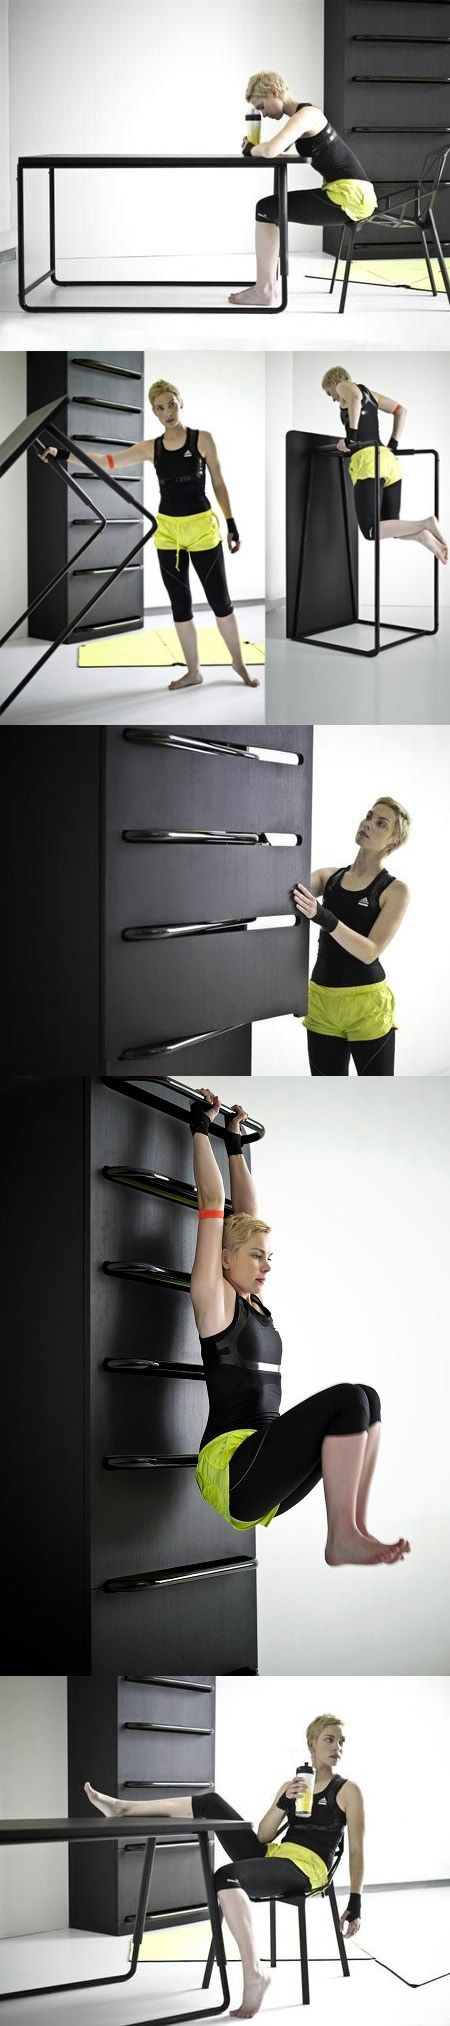 Cool home gym #fitness #house Sports & Outdoors - Sports & Fitness - home gym - amzn.to/2jsMKm8 Home Gyms http://amzn.to/2l56zQc